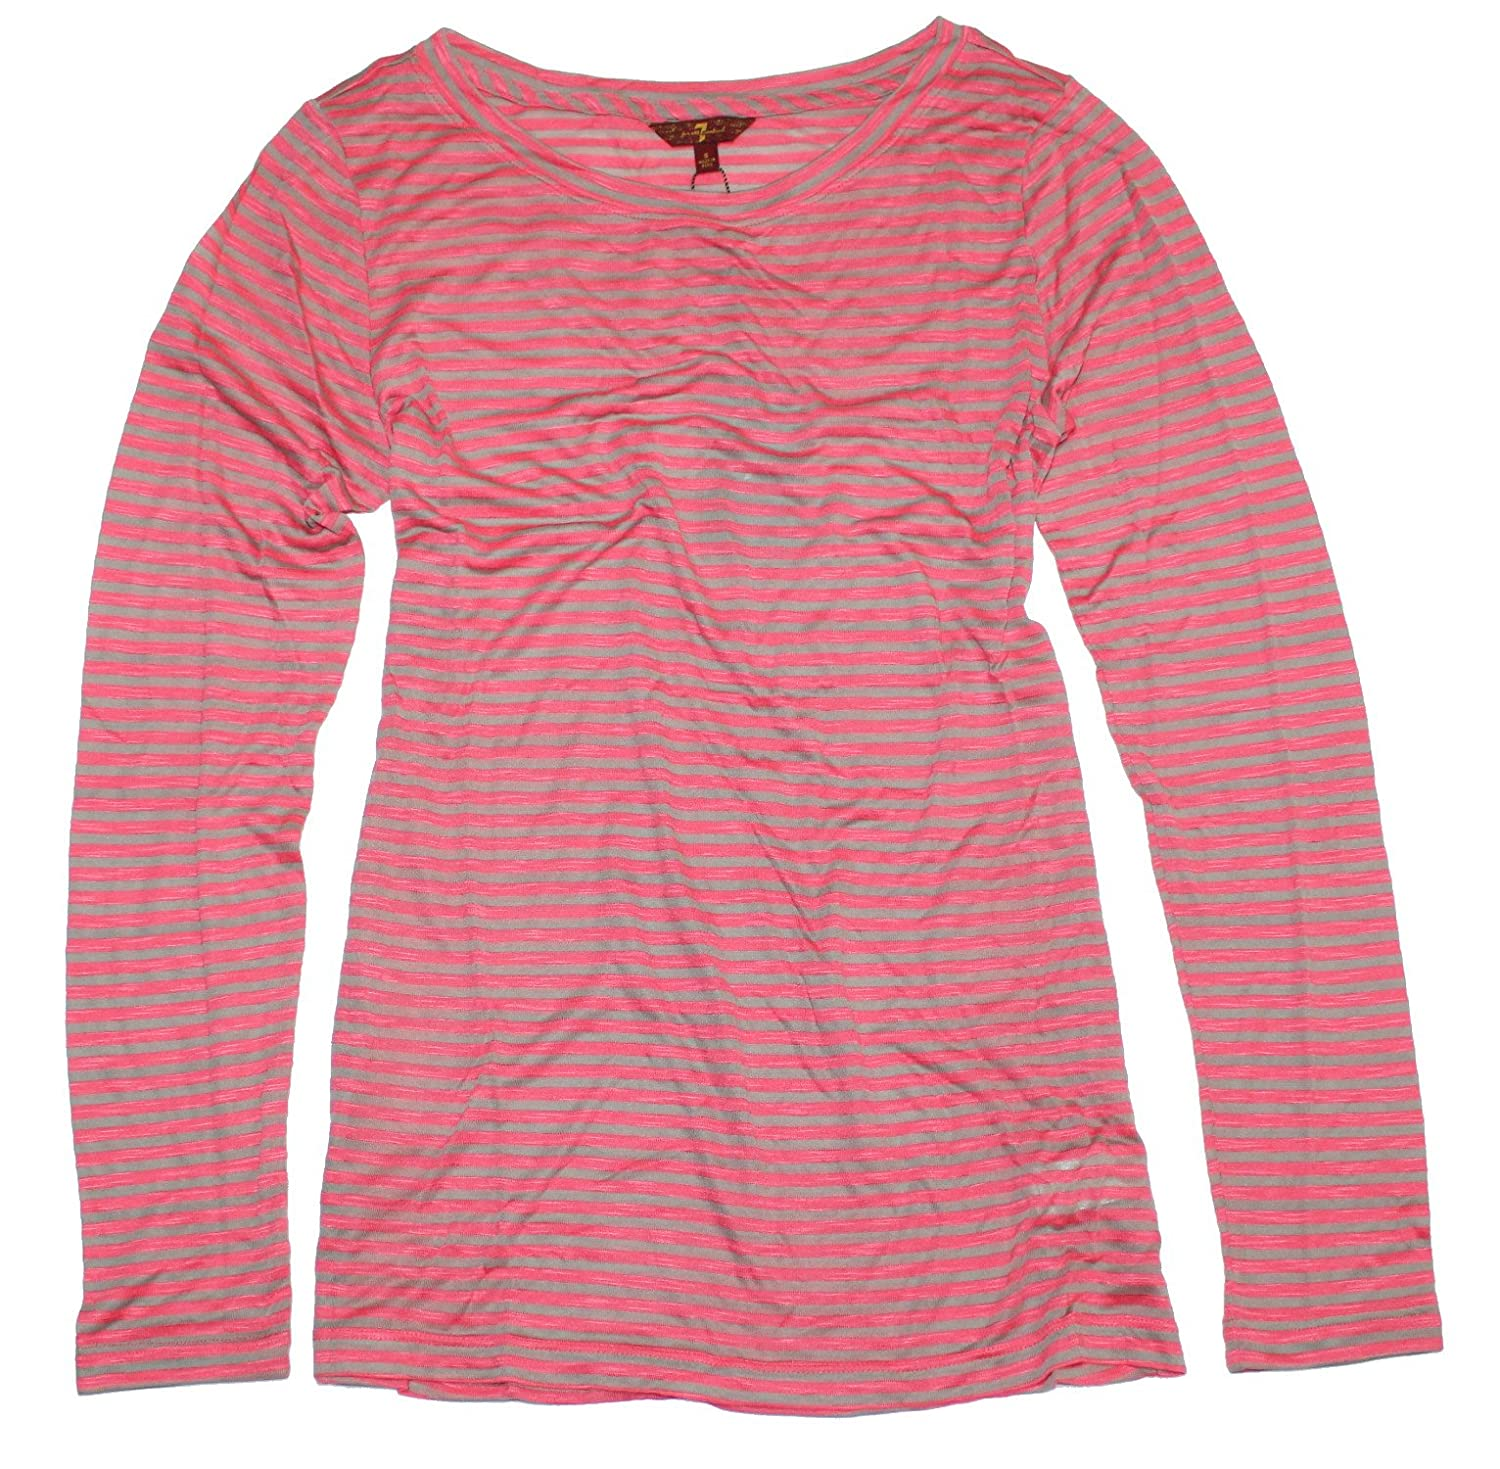 7 for All Mankind Women's Long Sleeve Striped Crewneck T-shirt